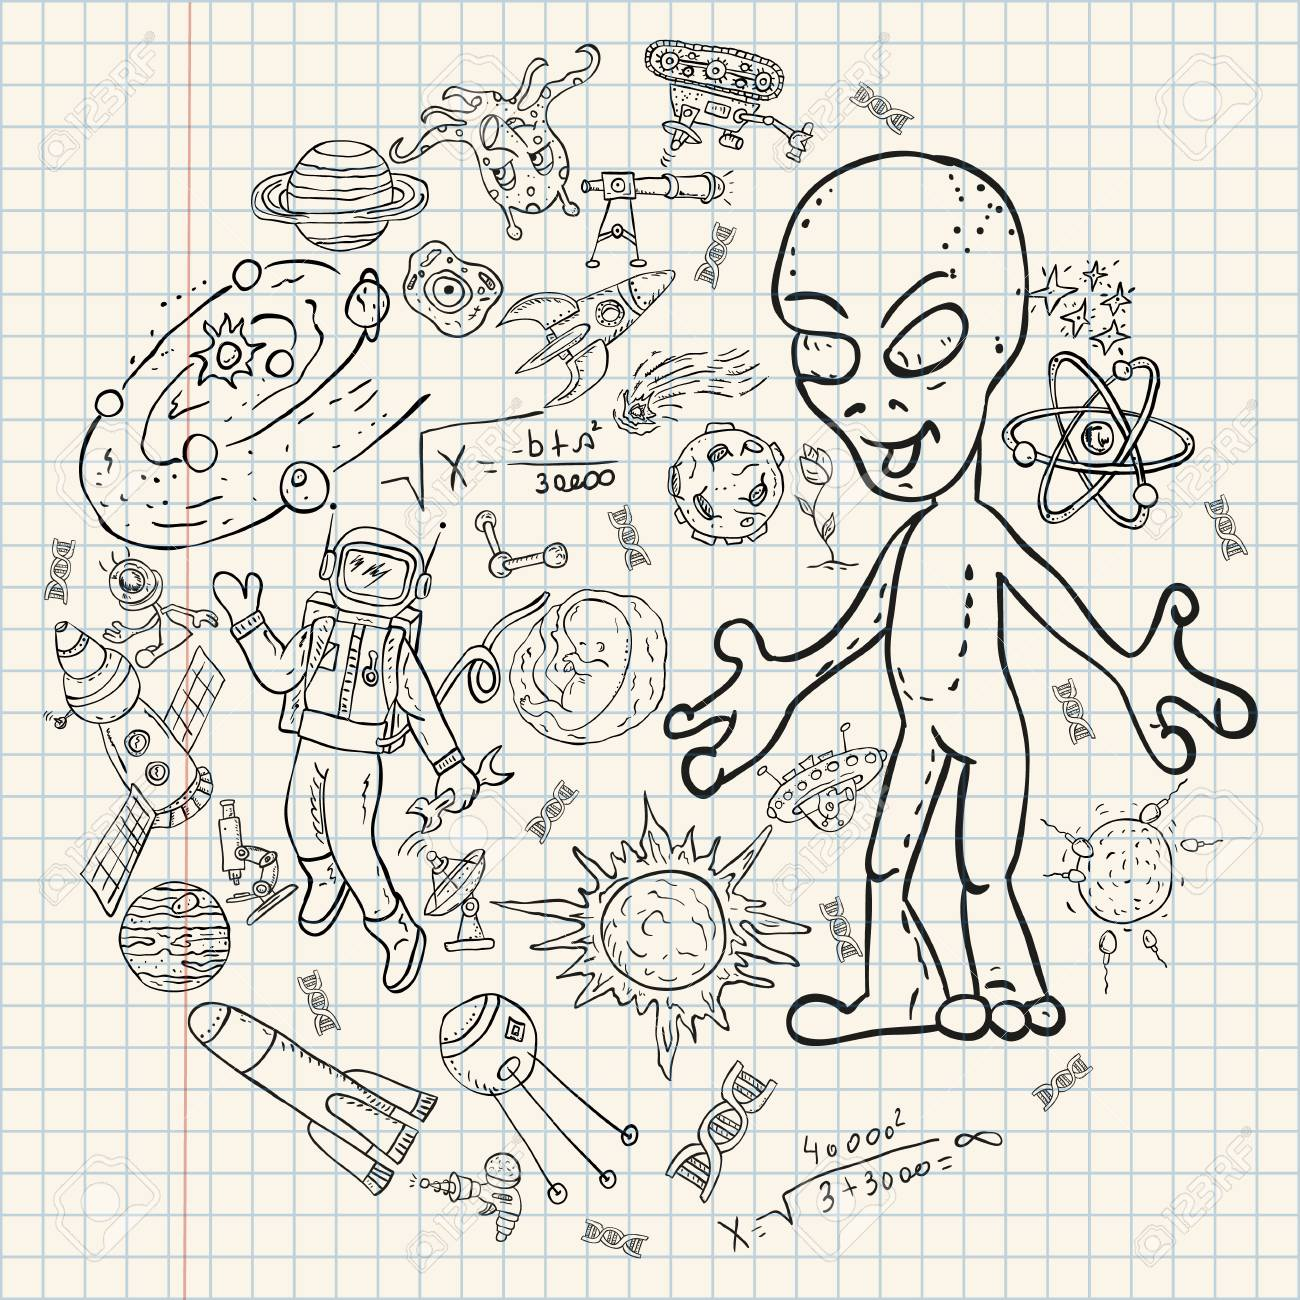 Vector vector childrens drawings coloring pages on space theme science and the emergence of life on earth ufo planet reproduction technique universe